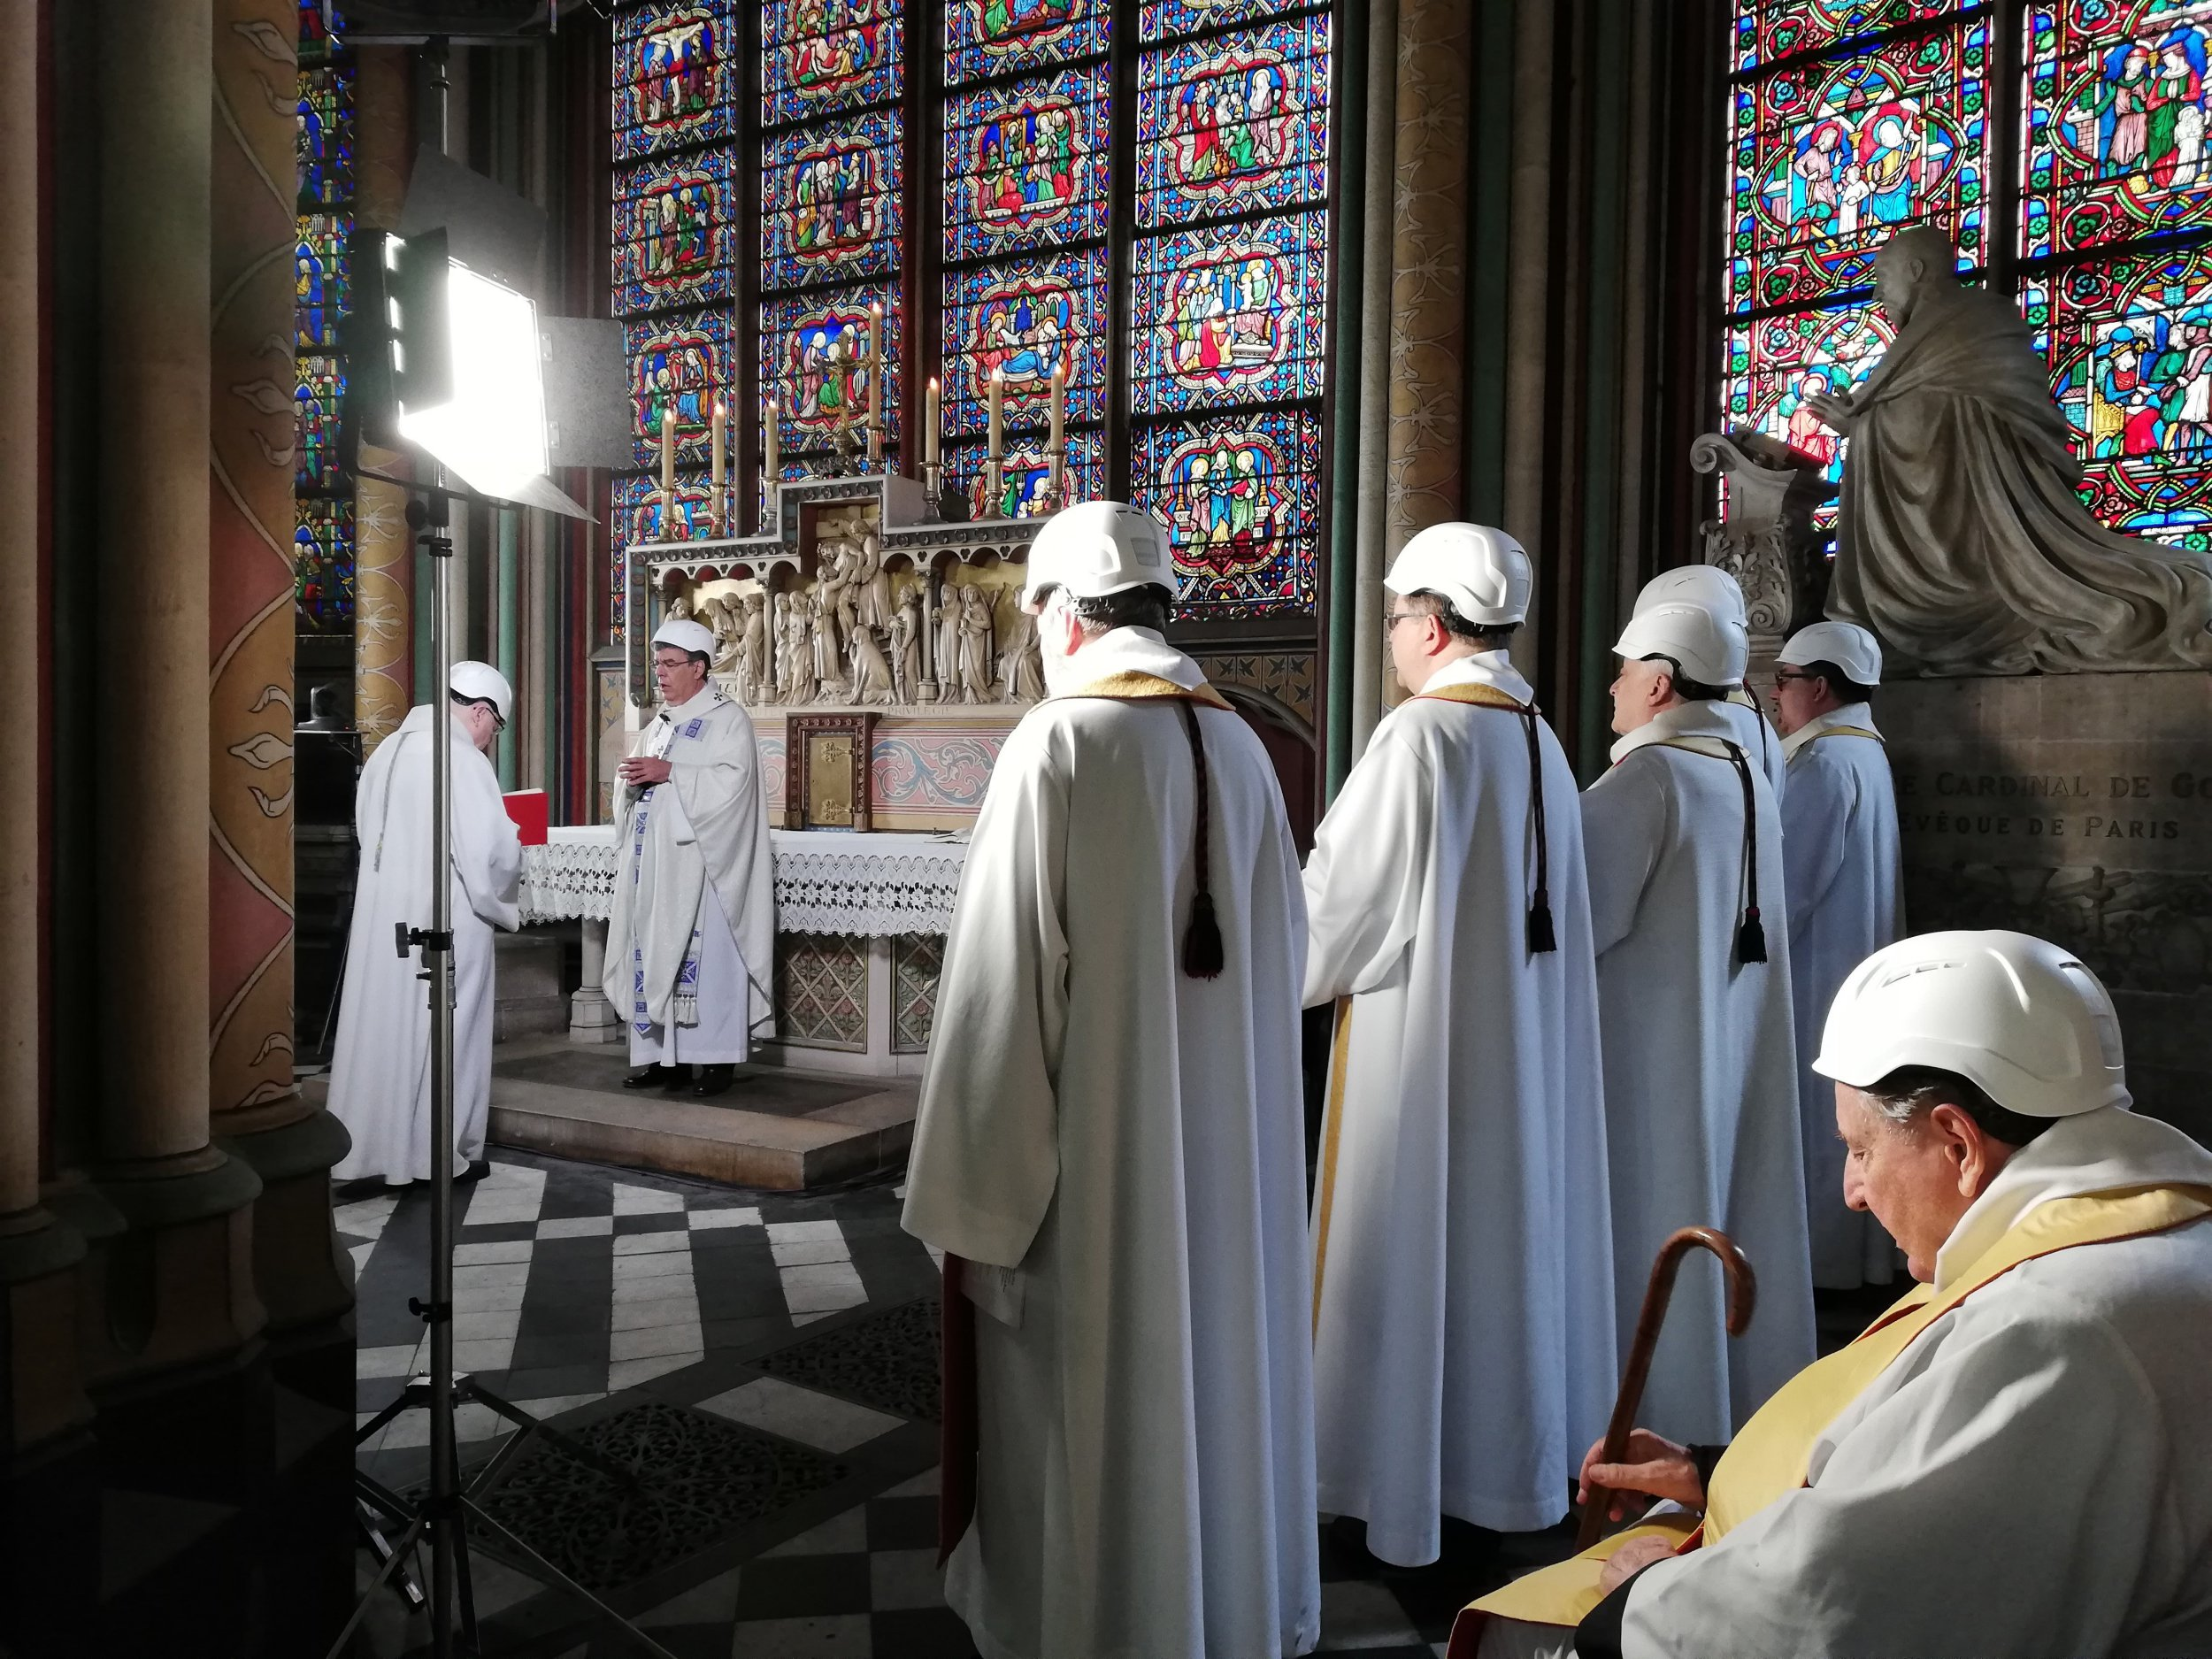 The Archbishop of Paris Michel Aupetit, second left, leads a initial mass in a side chapel, twin months after a harmful glow engulfed a Notre-Dame de Paris cathedral, Saturday Jun 15, 2019, in Paris. (Karine Perret, Pool around AP)